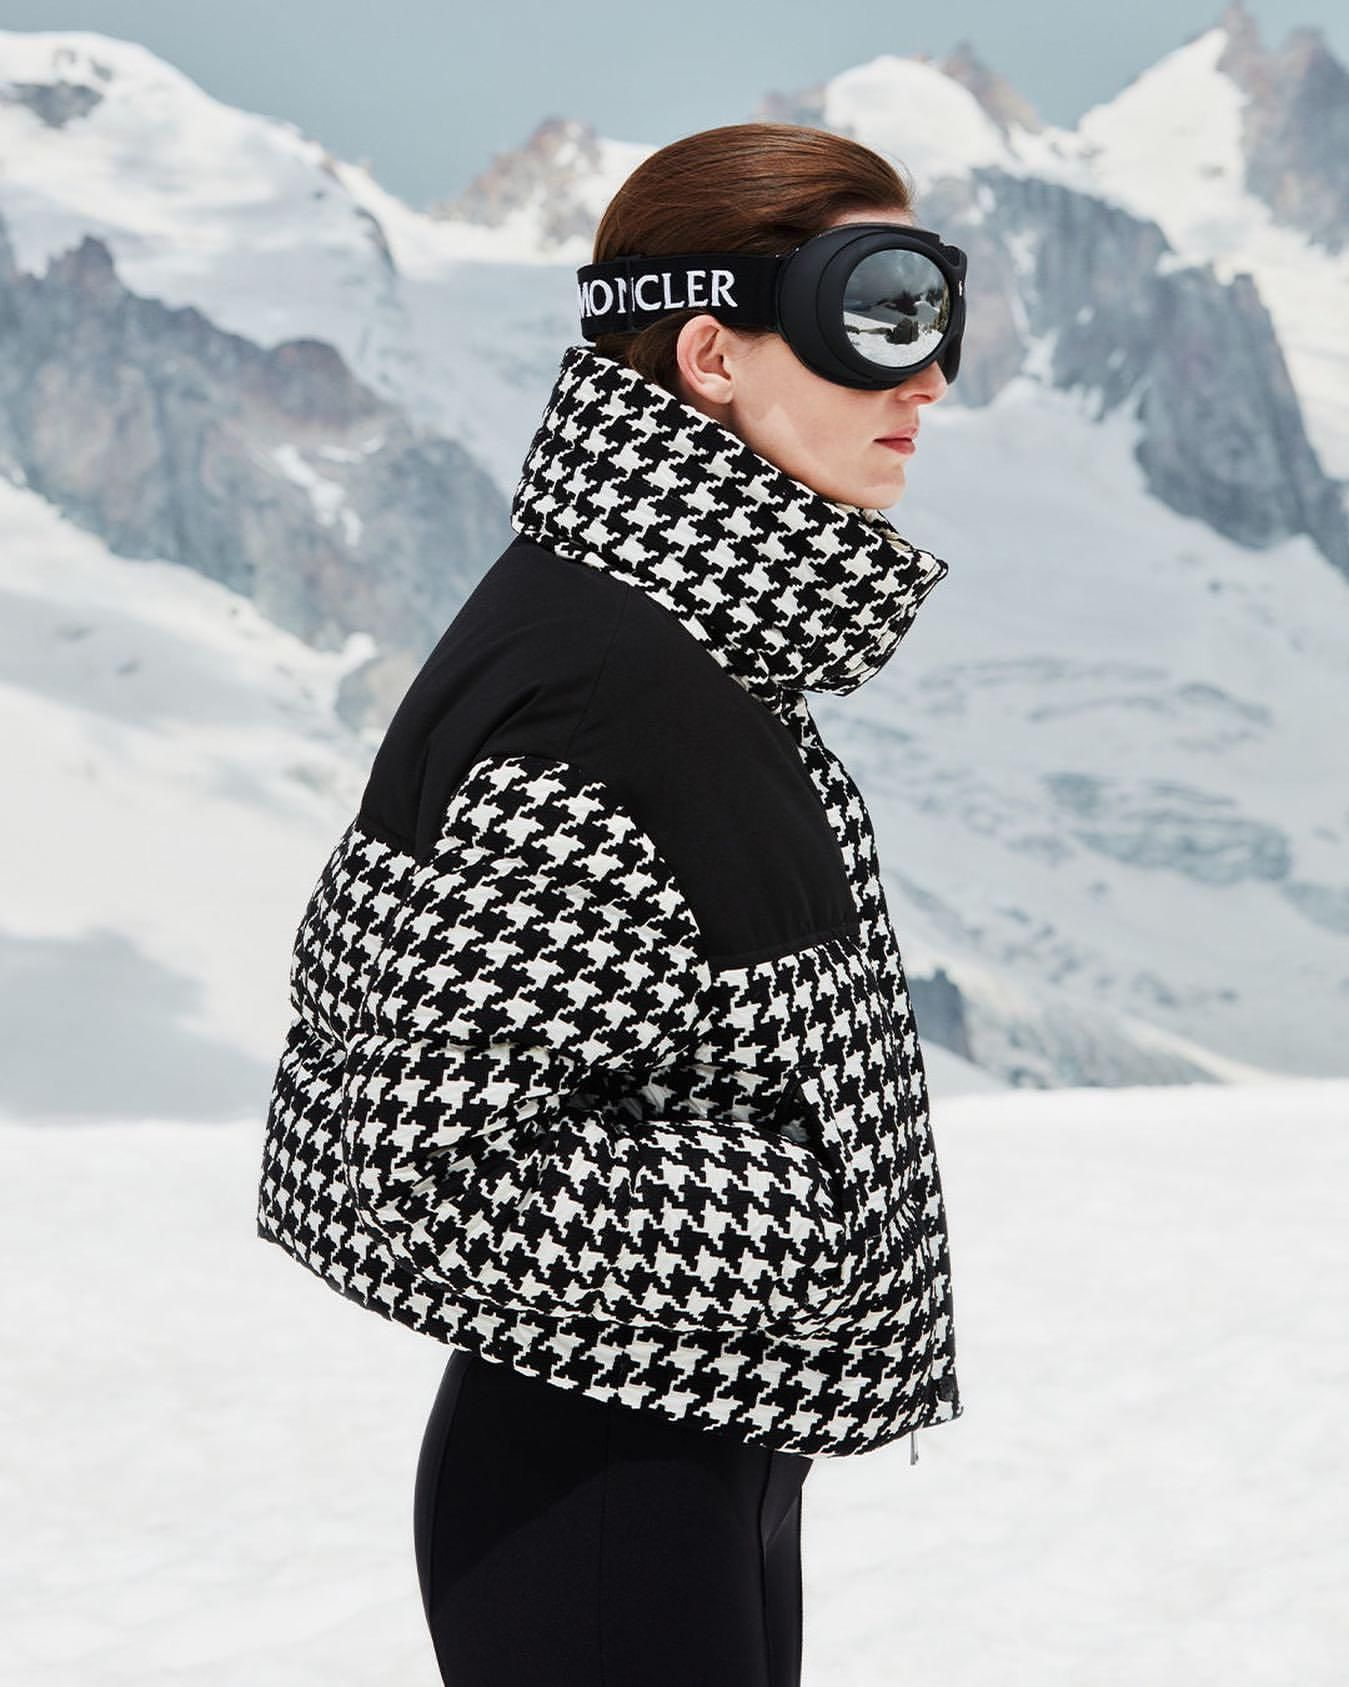 Find Out Where To Get The Jacket Skiing Outfit Moncler Jacket Women Apres Ski Outfits [ 1687 x 1349 Pixel ]